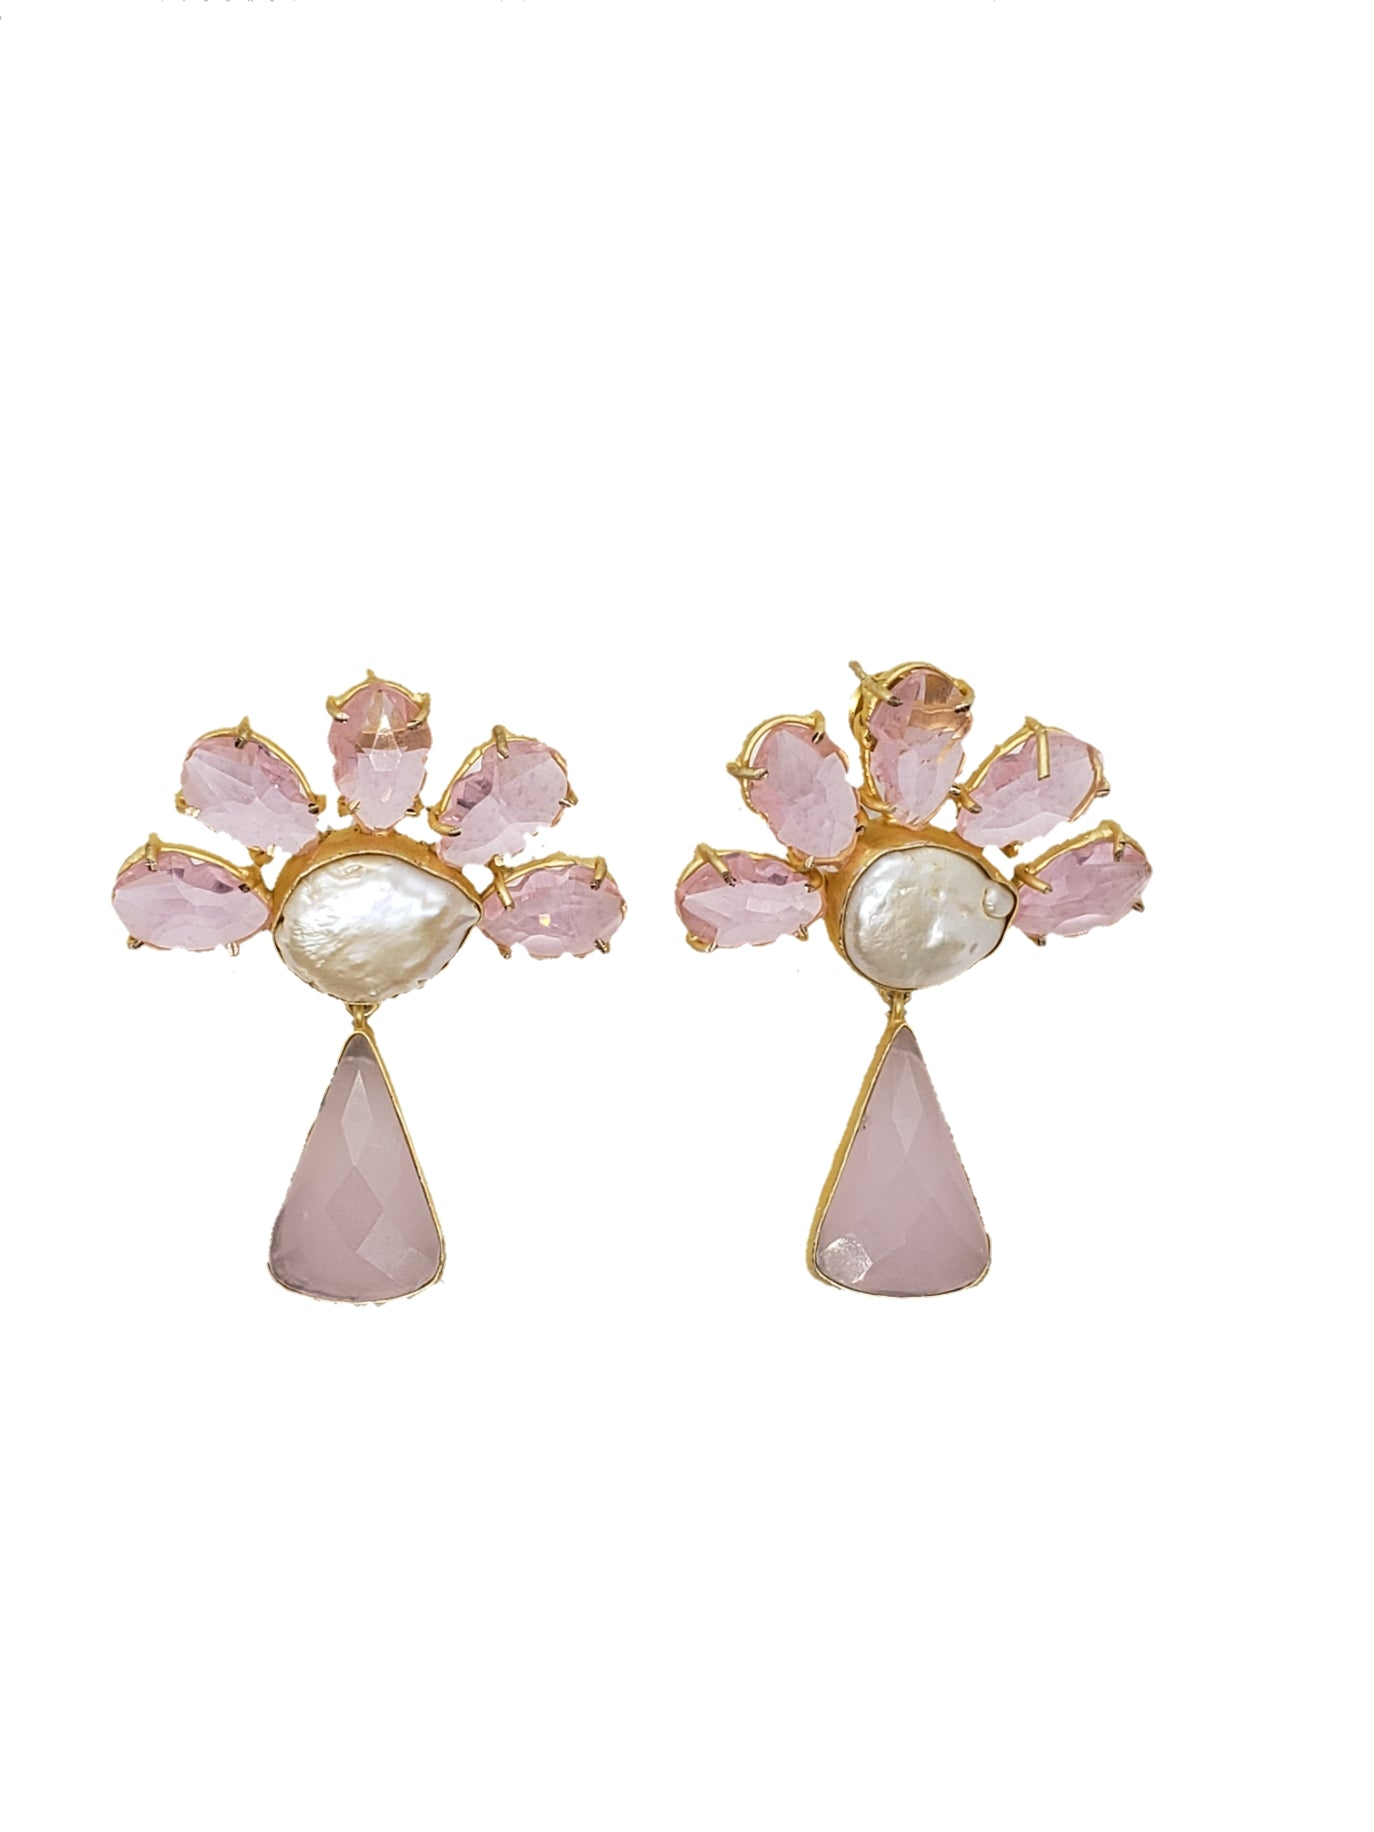 Rose Quartz and Mother of Pearl Floral Earrings - The Bauble Shop